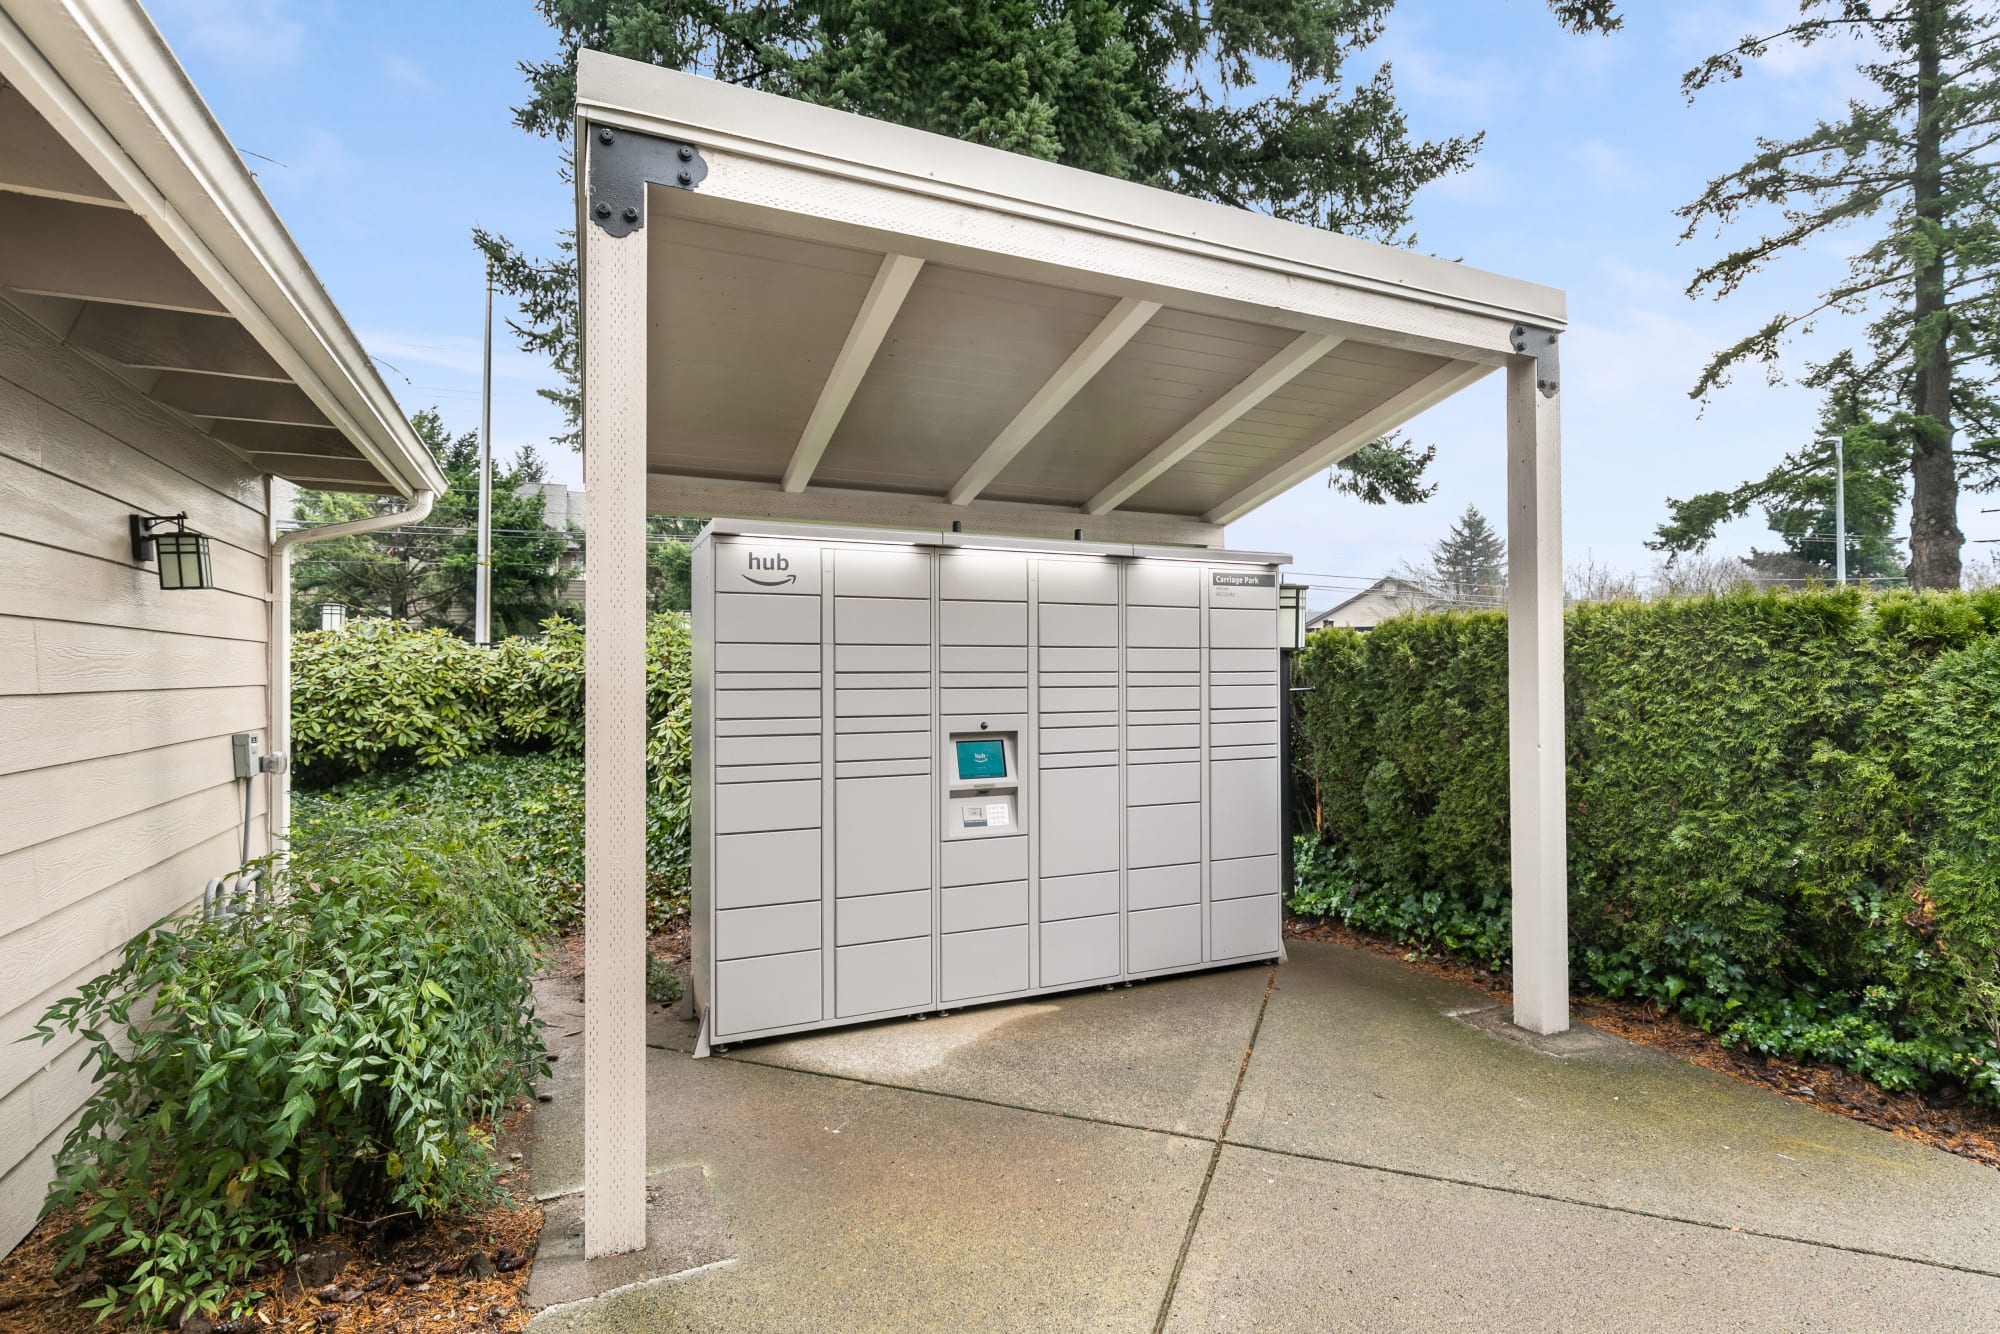 24-hour package lockers at Carriage Park Apartments in Vancouver, Washington